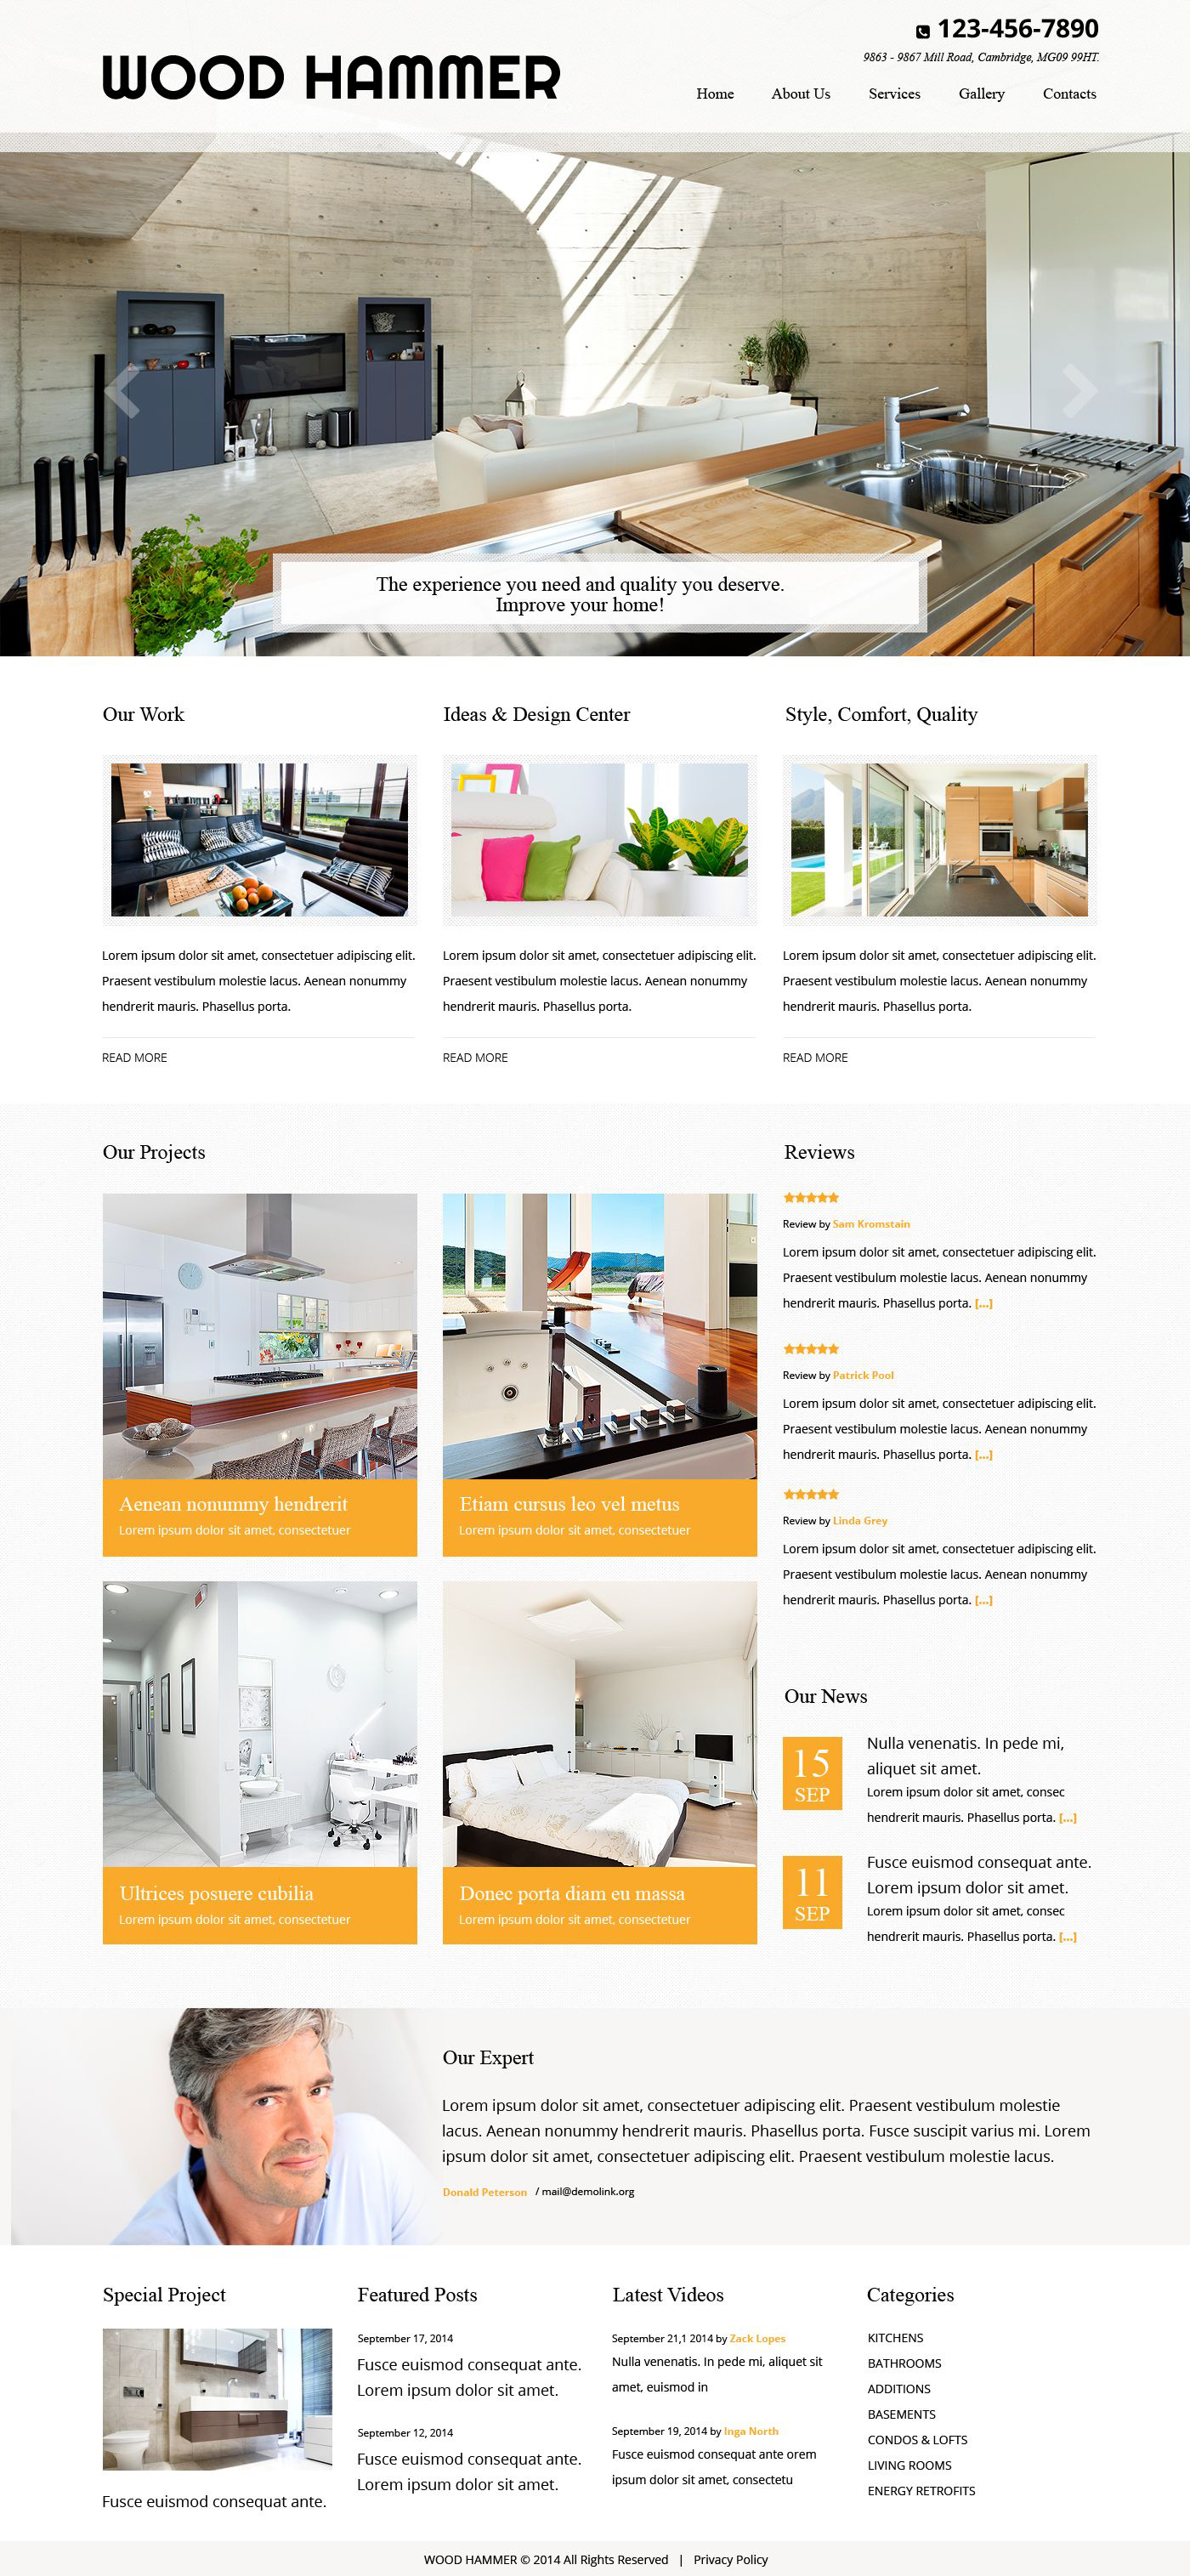 Most Design Ideas Home Improvement Website Pictures, And